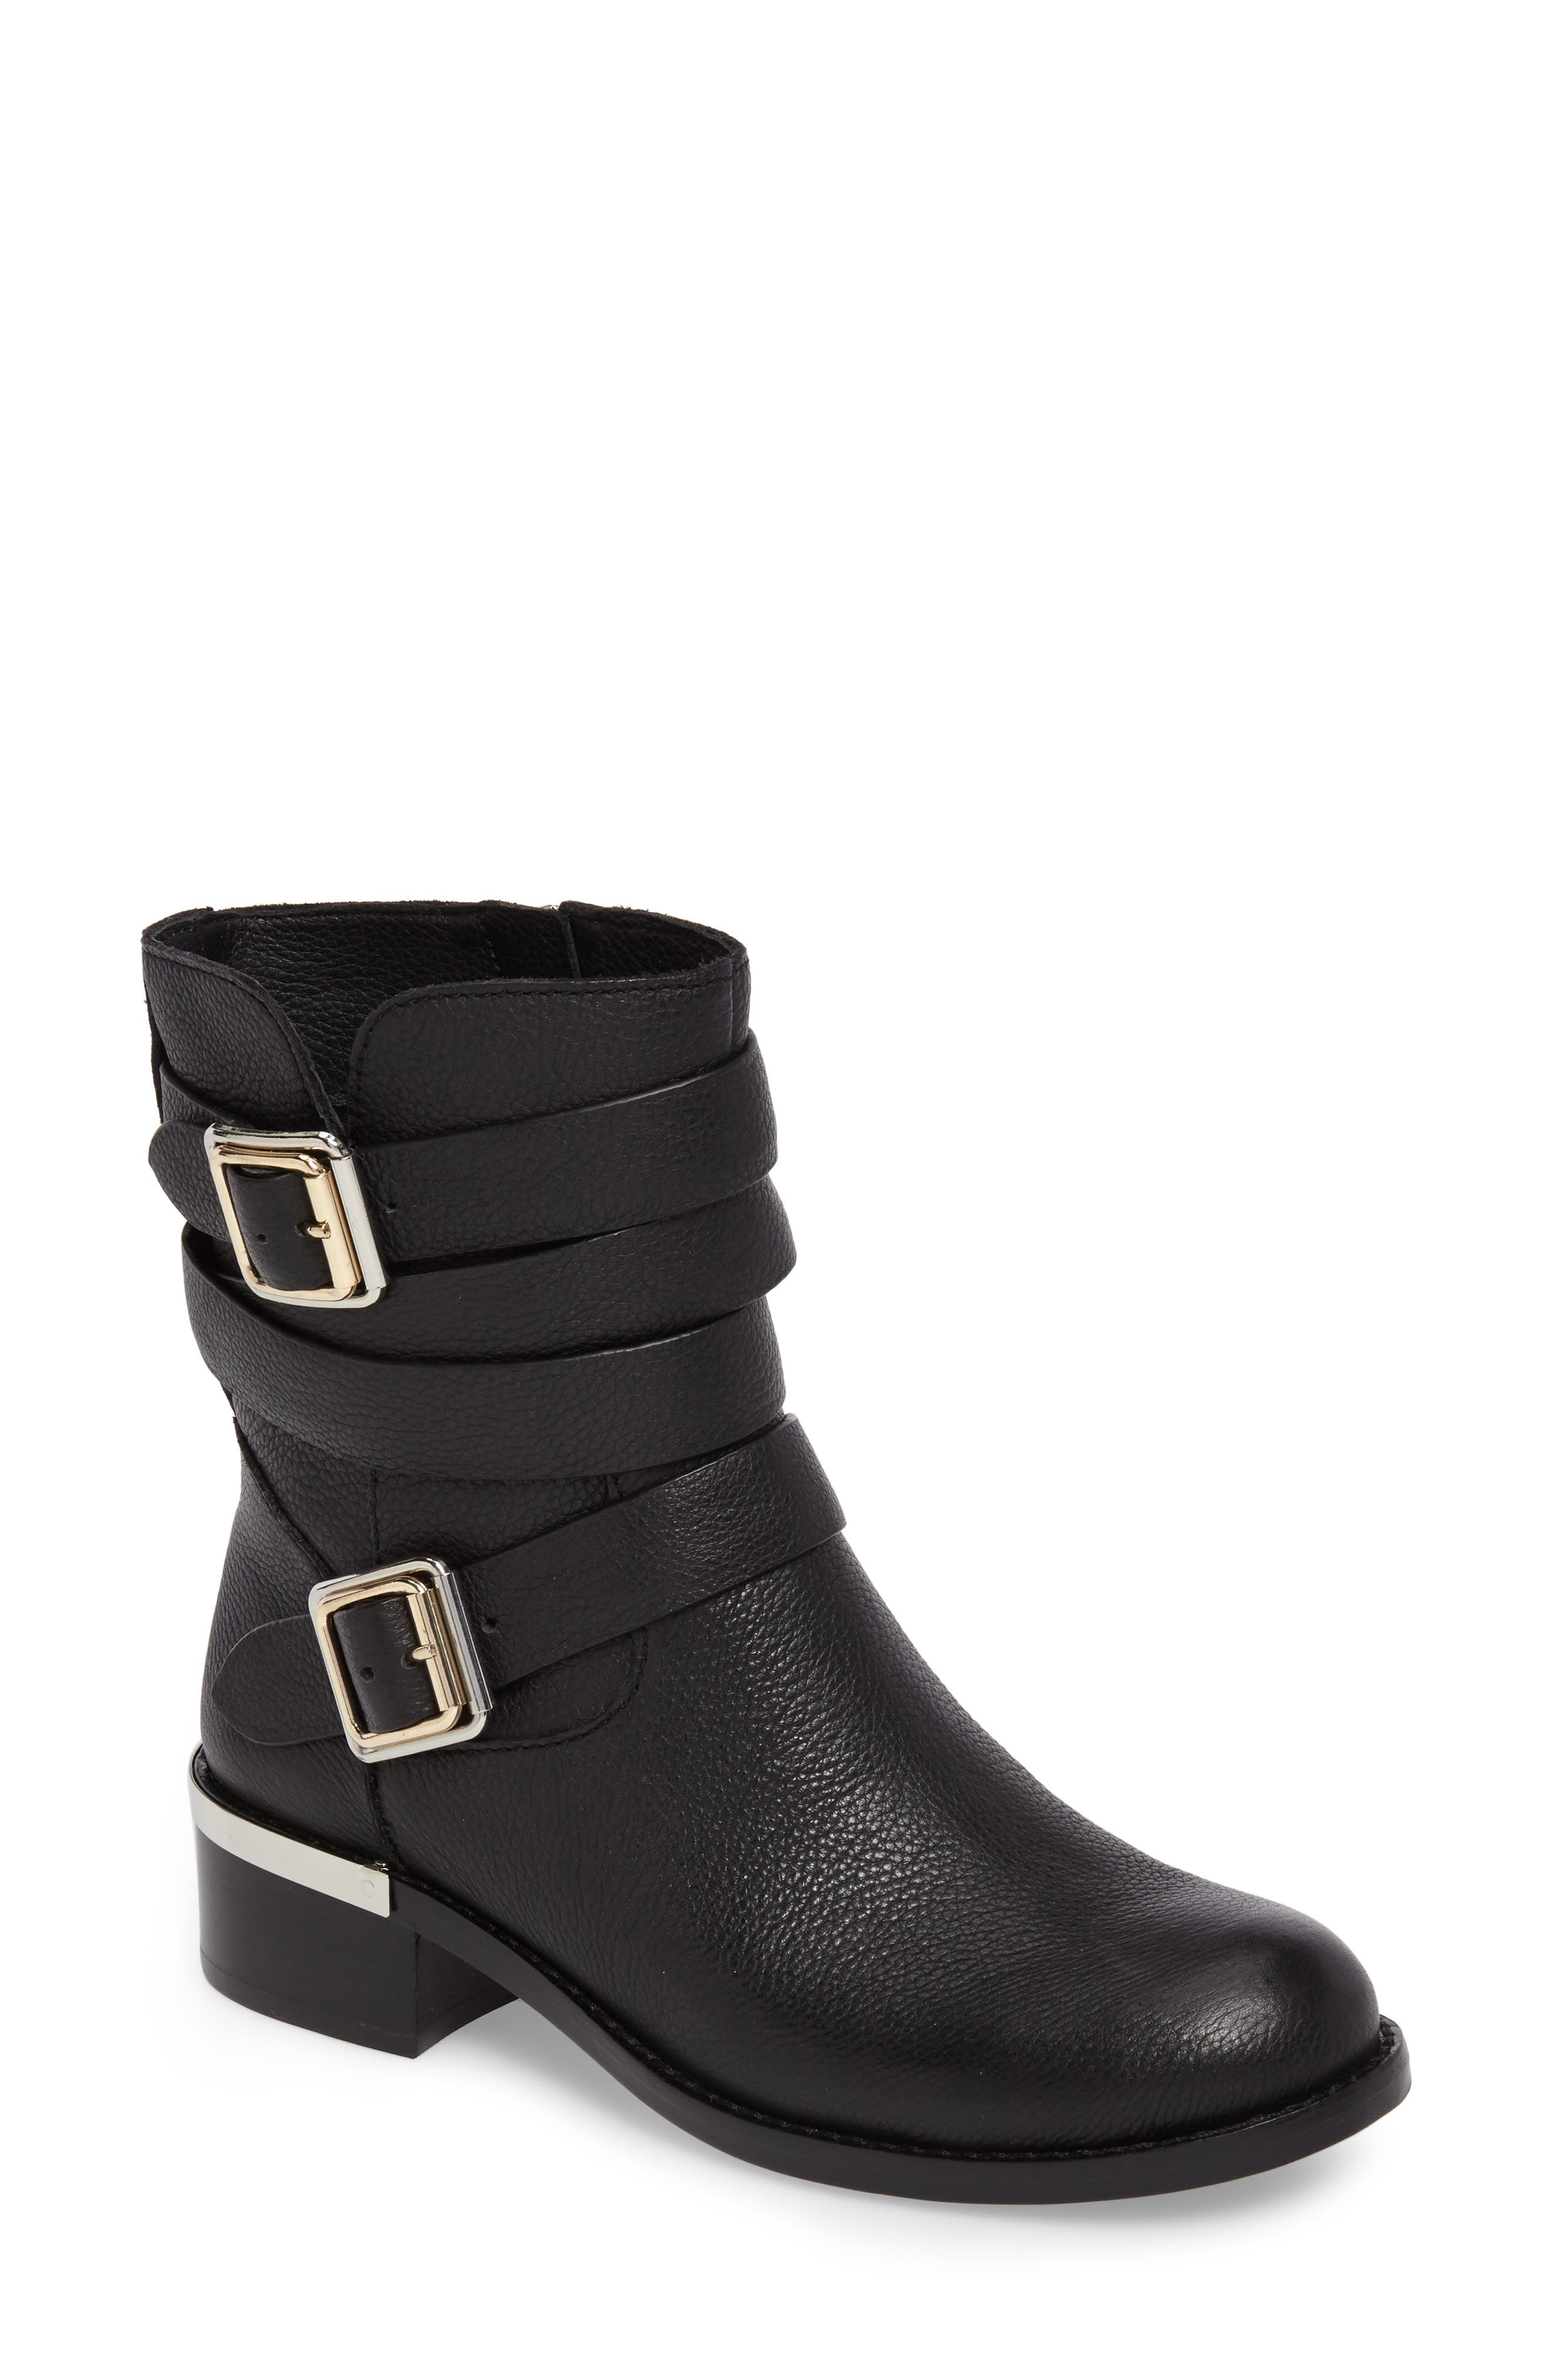 Webey Boot,                         Main,                         color, Black Leather